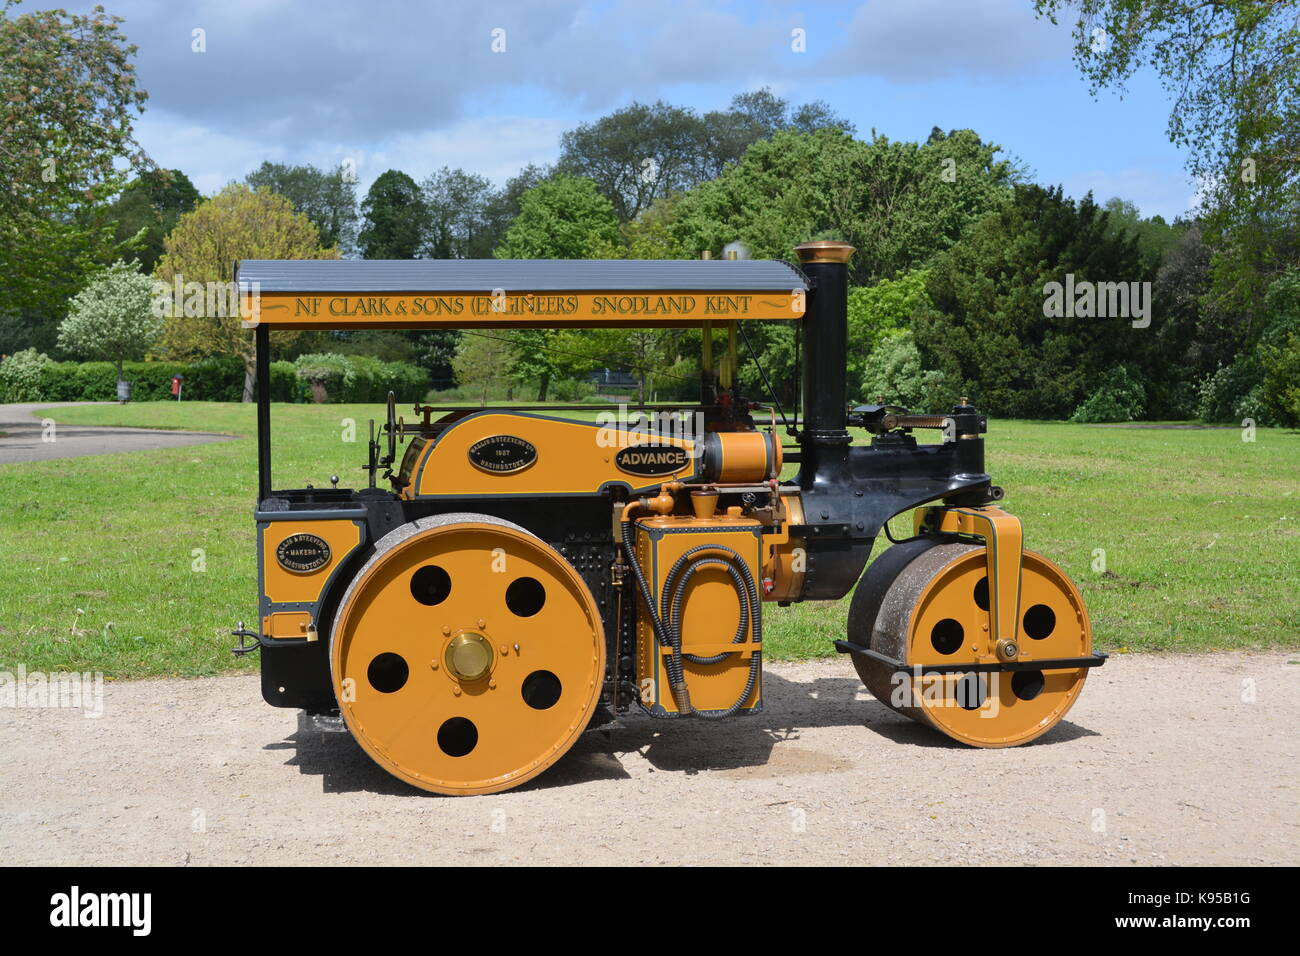 4 inch Scale Wallis Advance Steam Roller - Stock Image